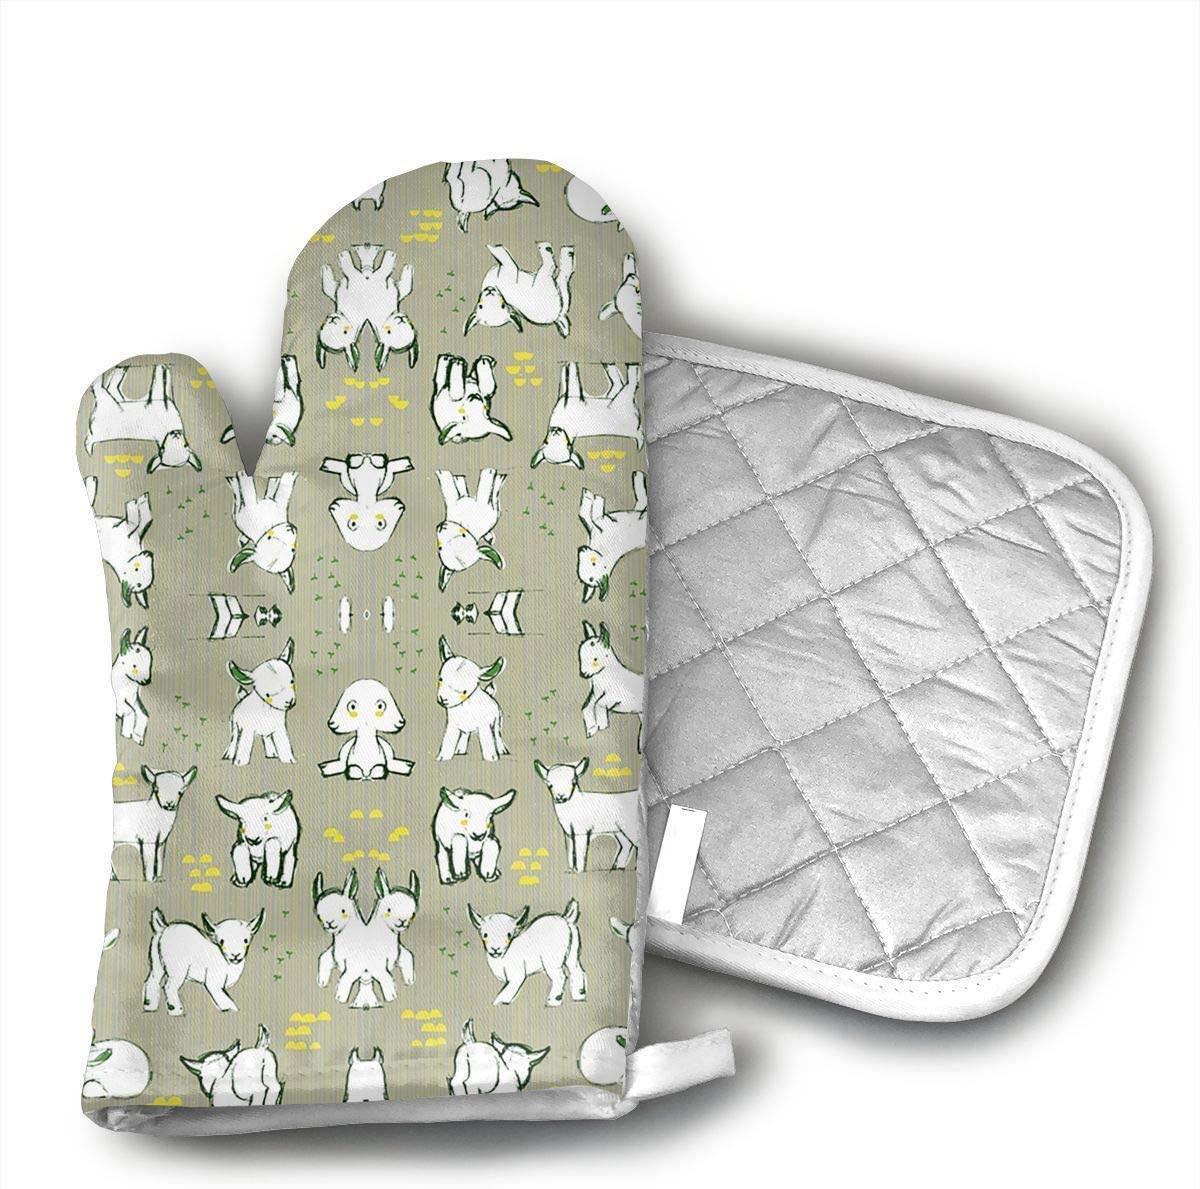 Baby Goats in Grey Grill Oven Mitts and Pot Holders Set with Polyester Cotton Non-Slip Grip, Heat Resistant, Oven Gloves for BBQ Cooking Baking, Grilling